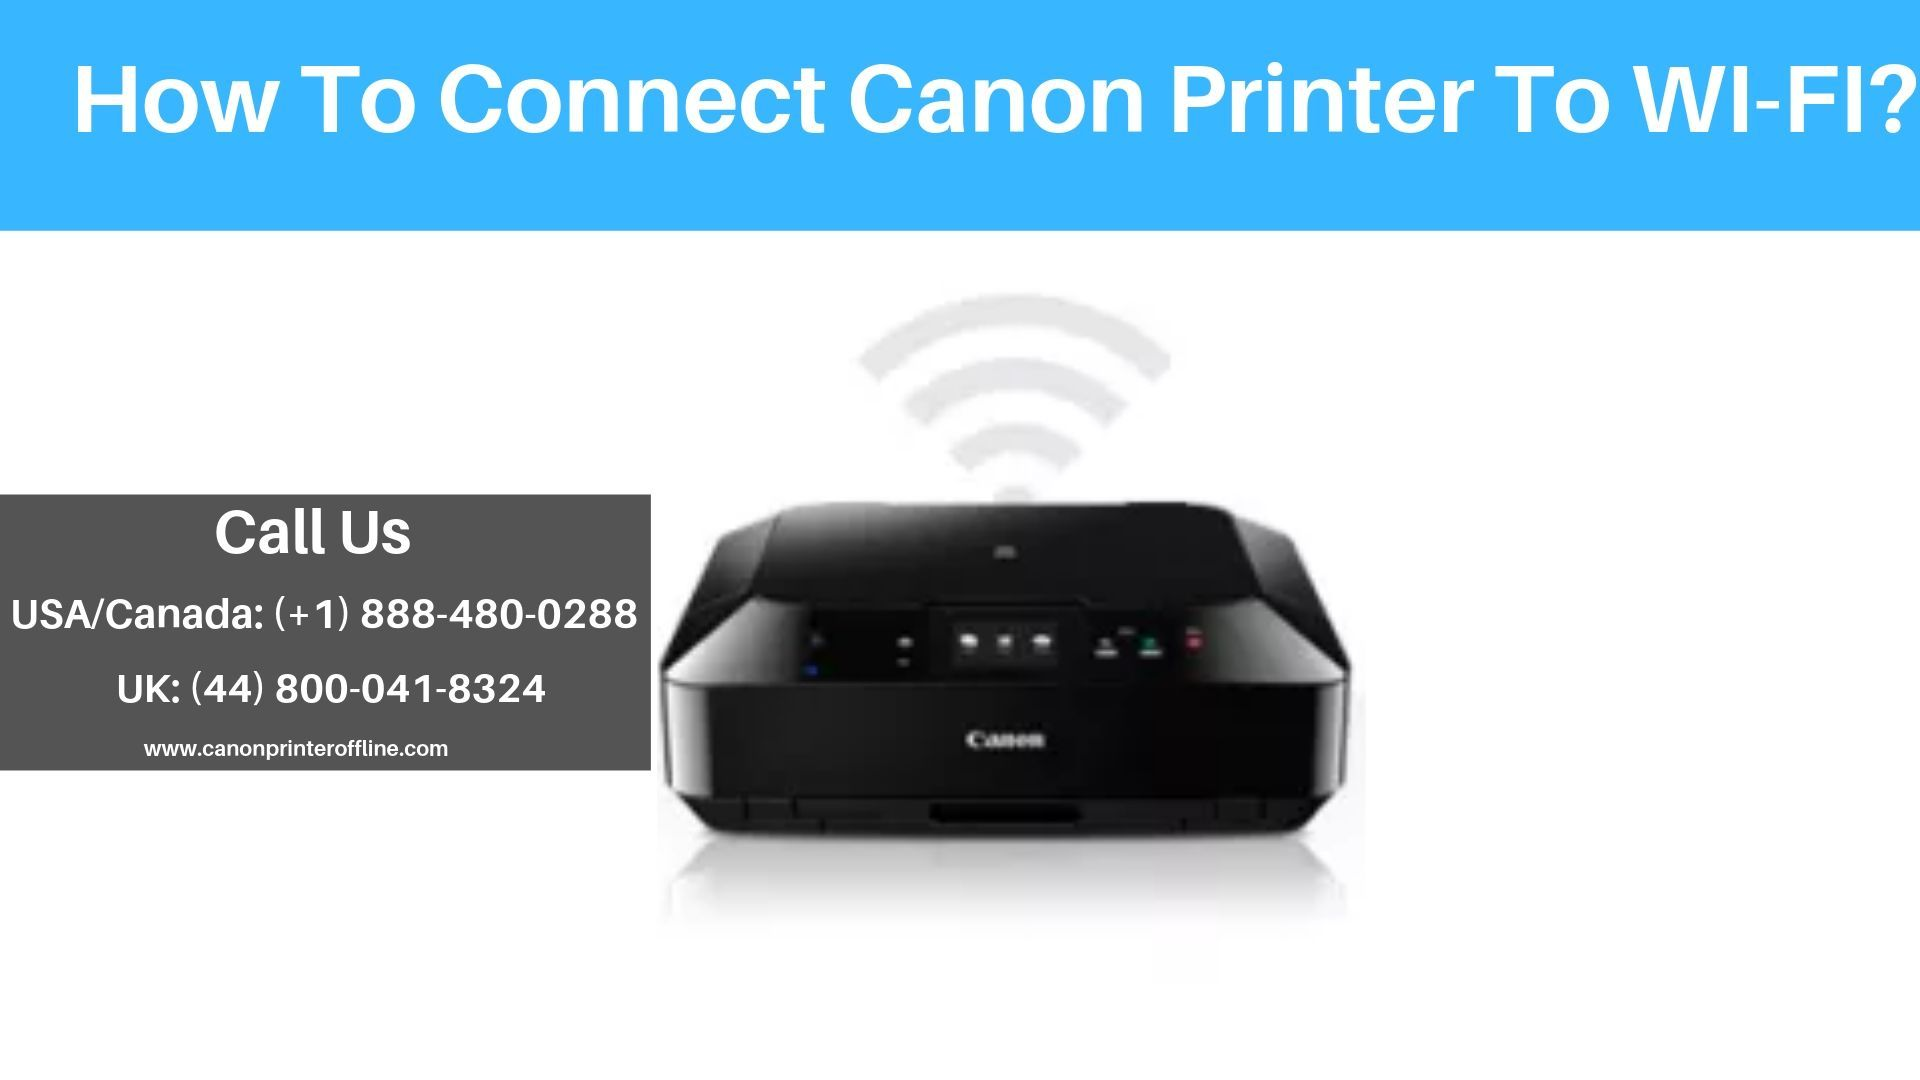 Are You Wanted To Know How To Connect Canon Printer To